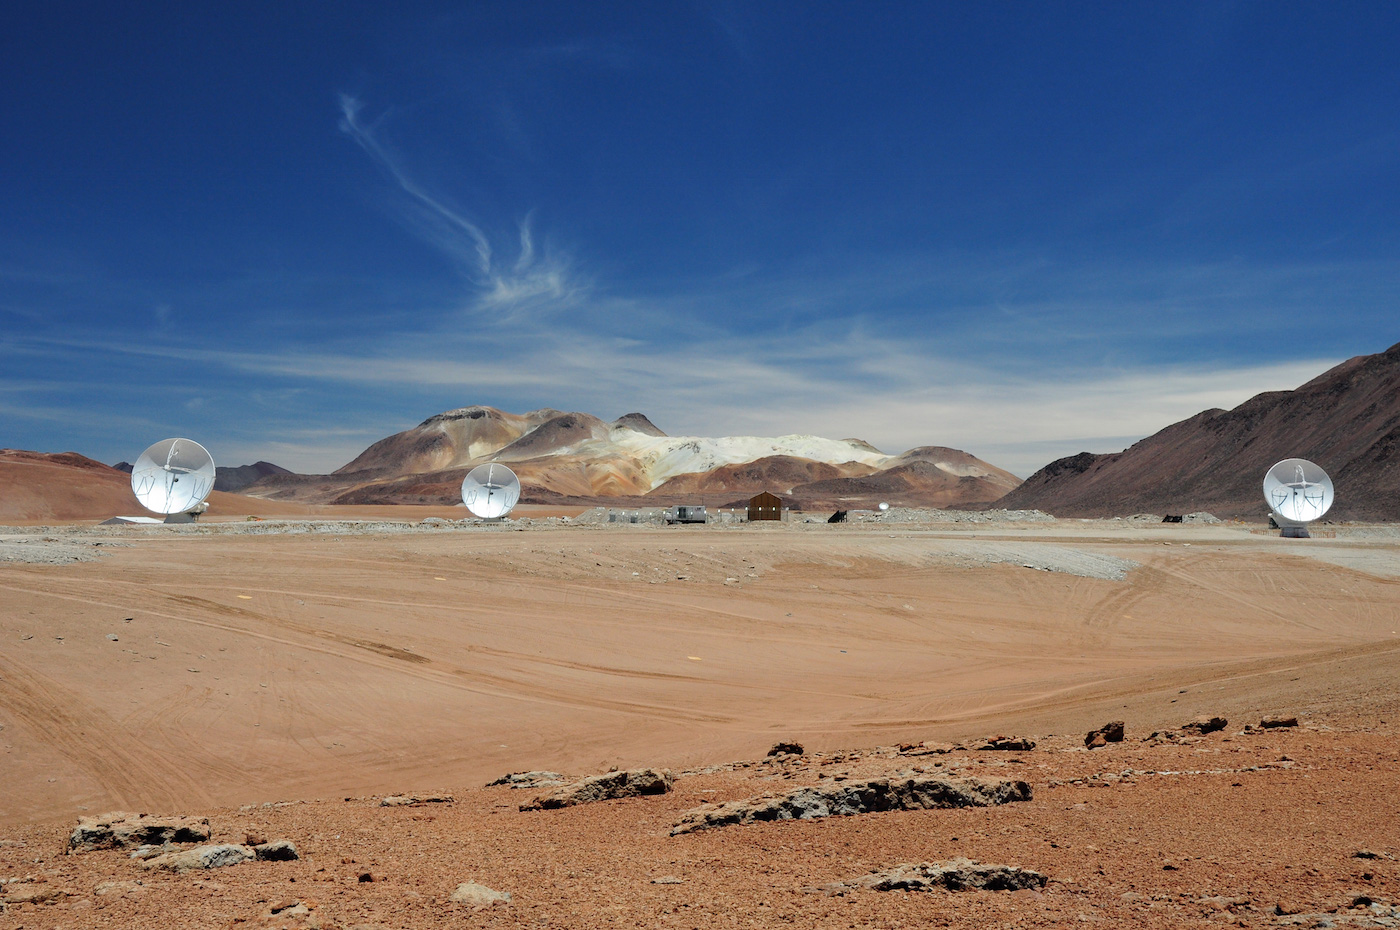 ALMA antennas interferometry, Atacama Desert